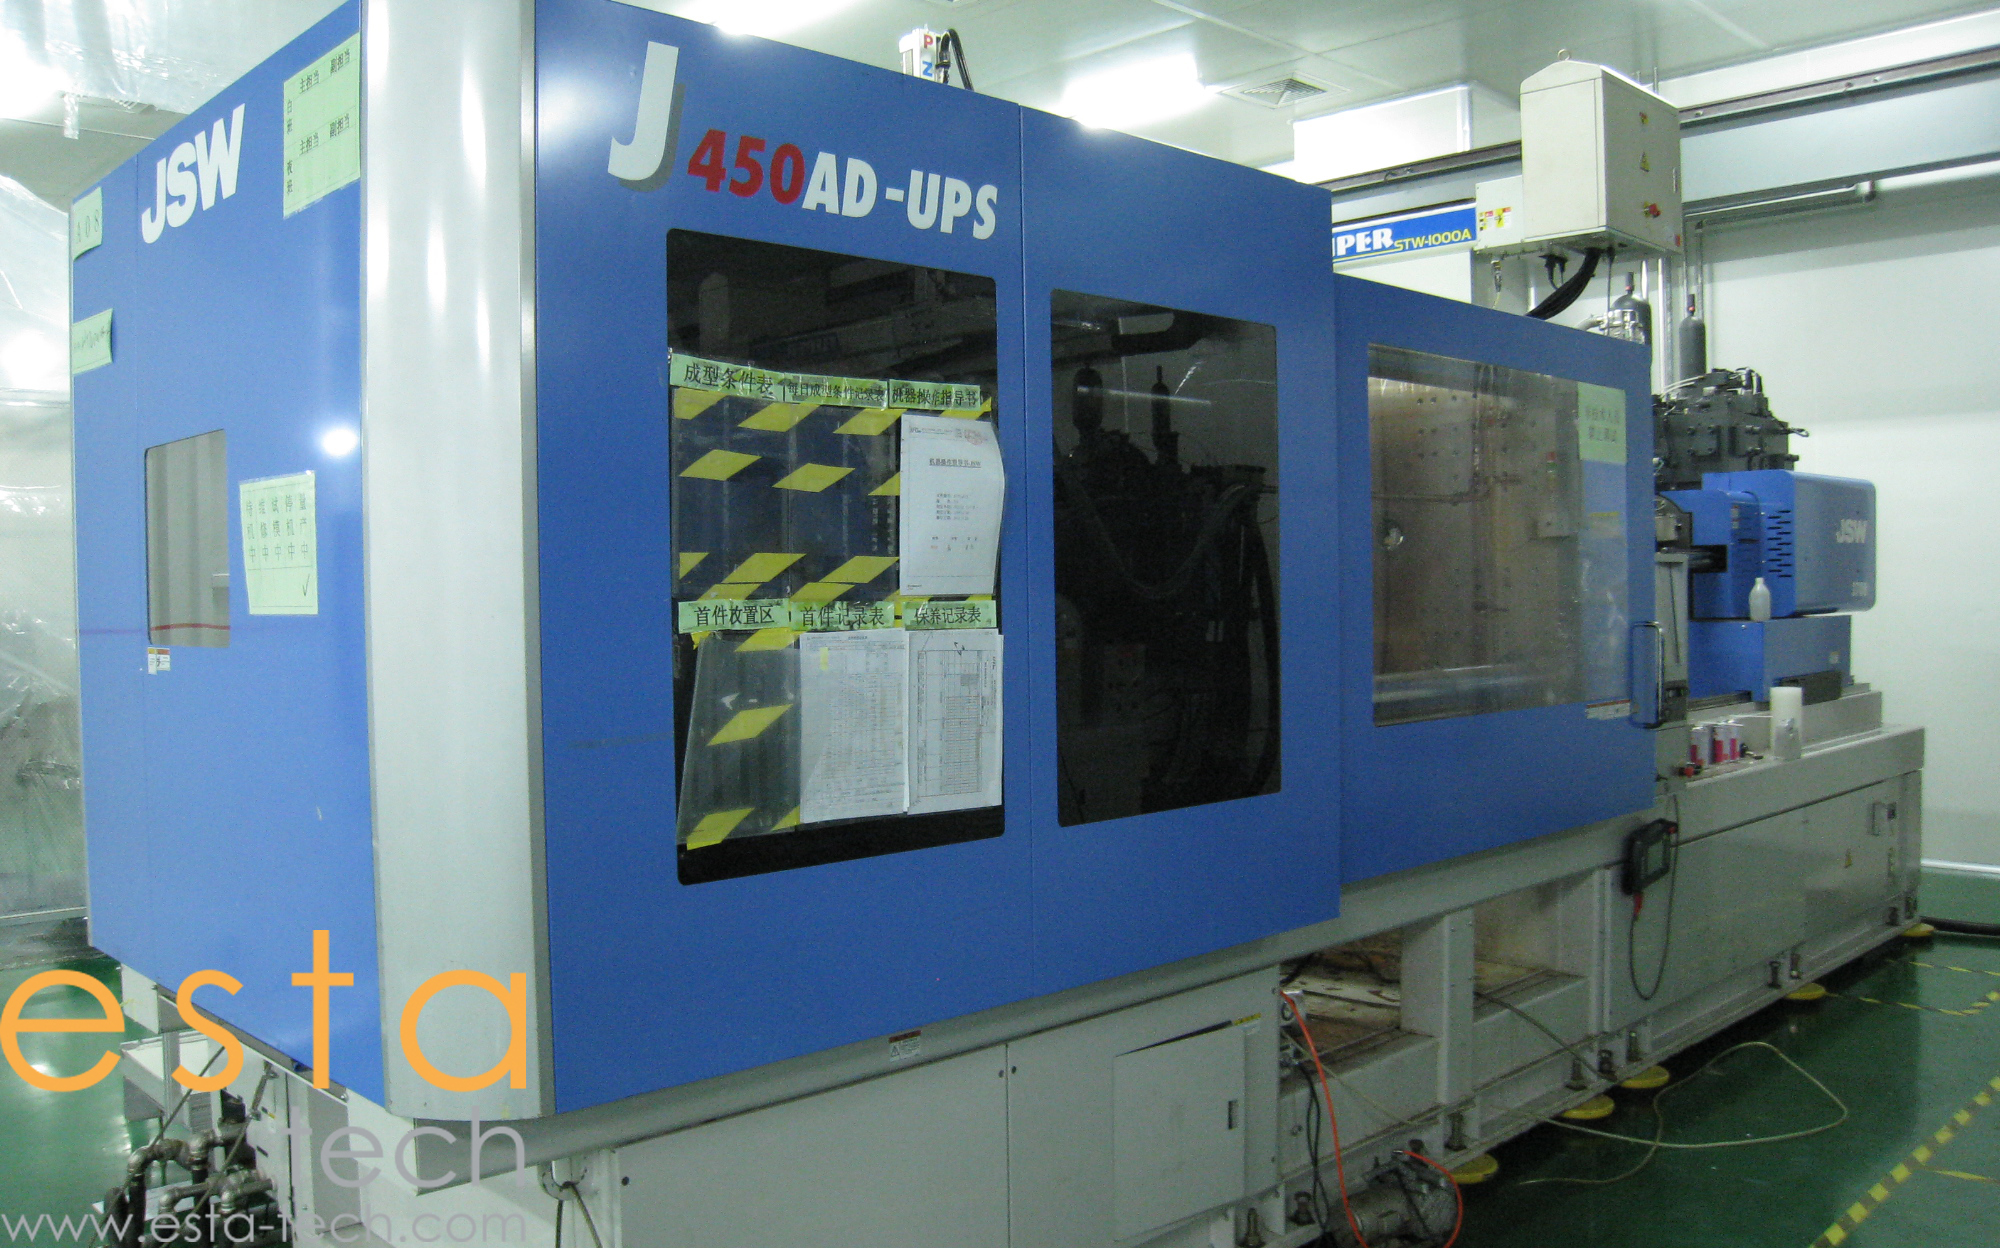 JSW J450AD-UPS 370H (2008) HYBRID PLASTIC INJECTION MOULDING MACHINE